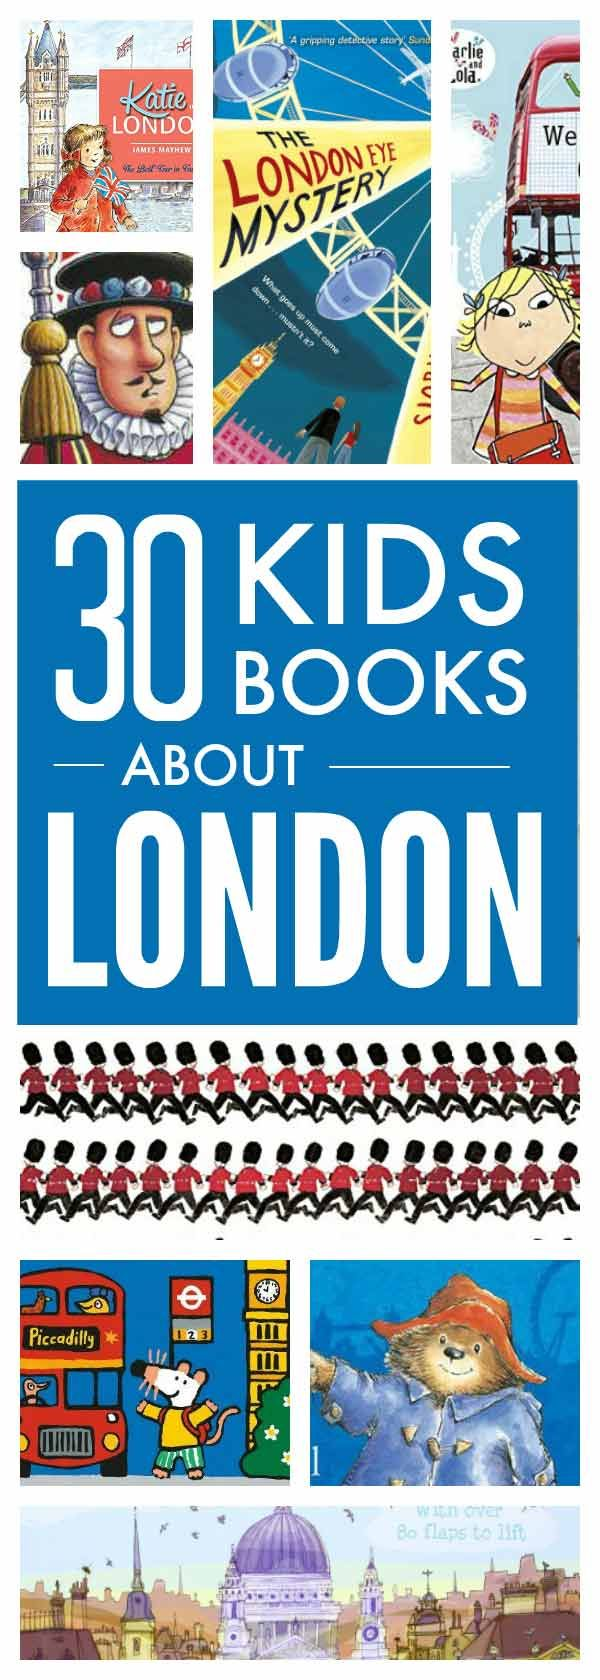 London books for kids – brilliant books about London for children of all ages from London picture books and early readers to exciting London adventures for older kids #london #kidsbooks #londonbooks